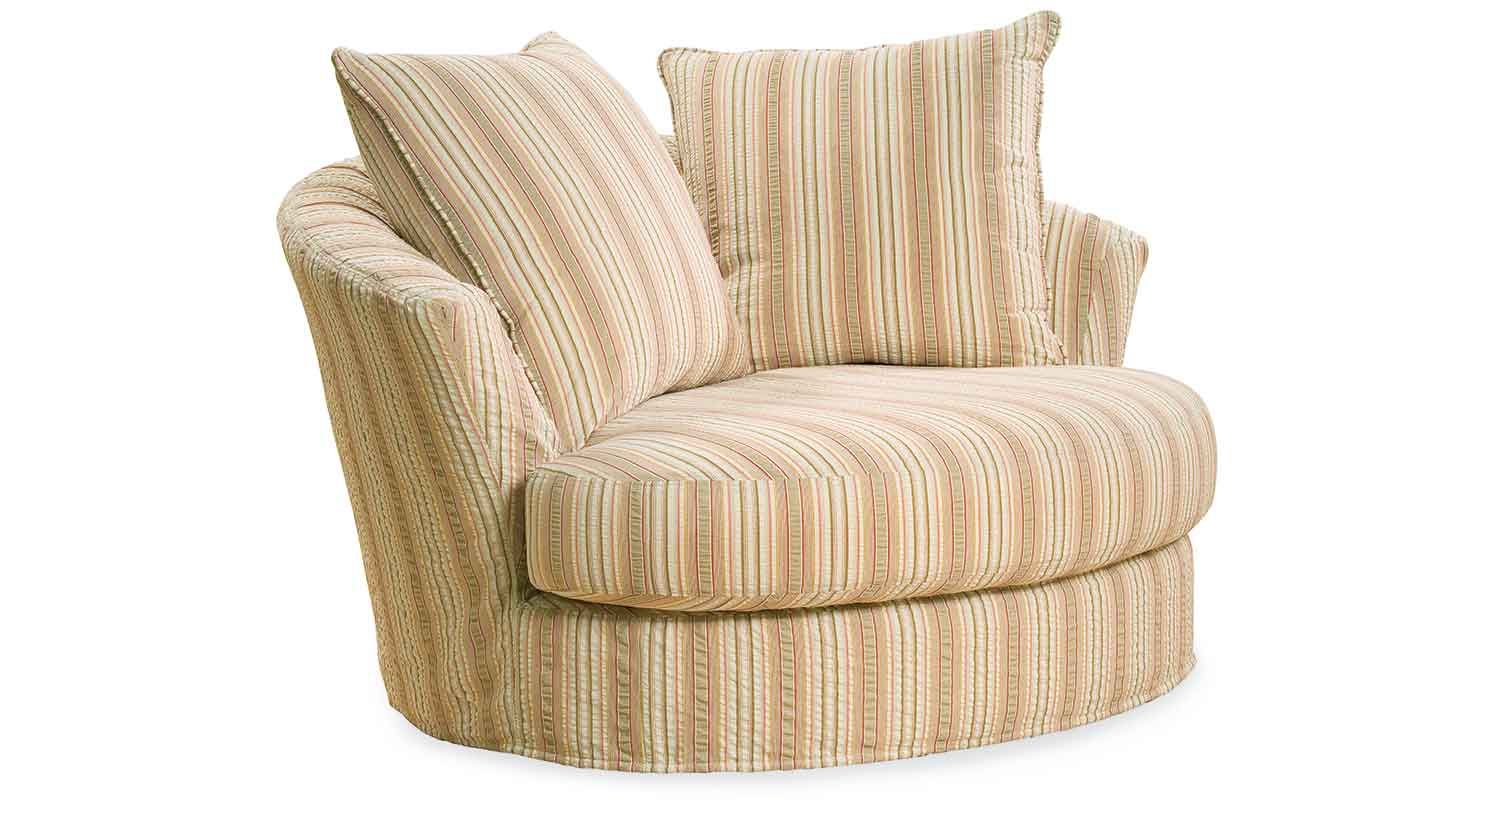 Circle Furniture Chairs Margaritaville Adirondack Lucy Chair And A Half Oversized Ma